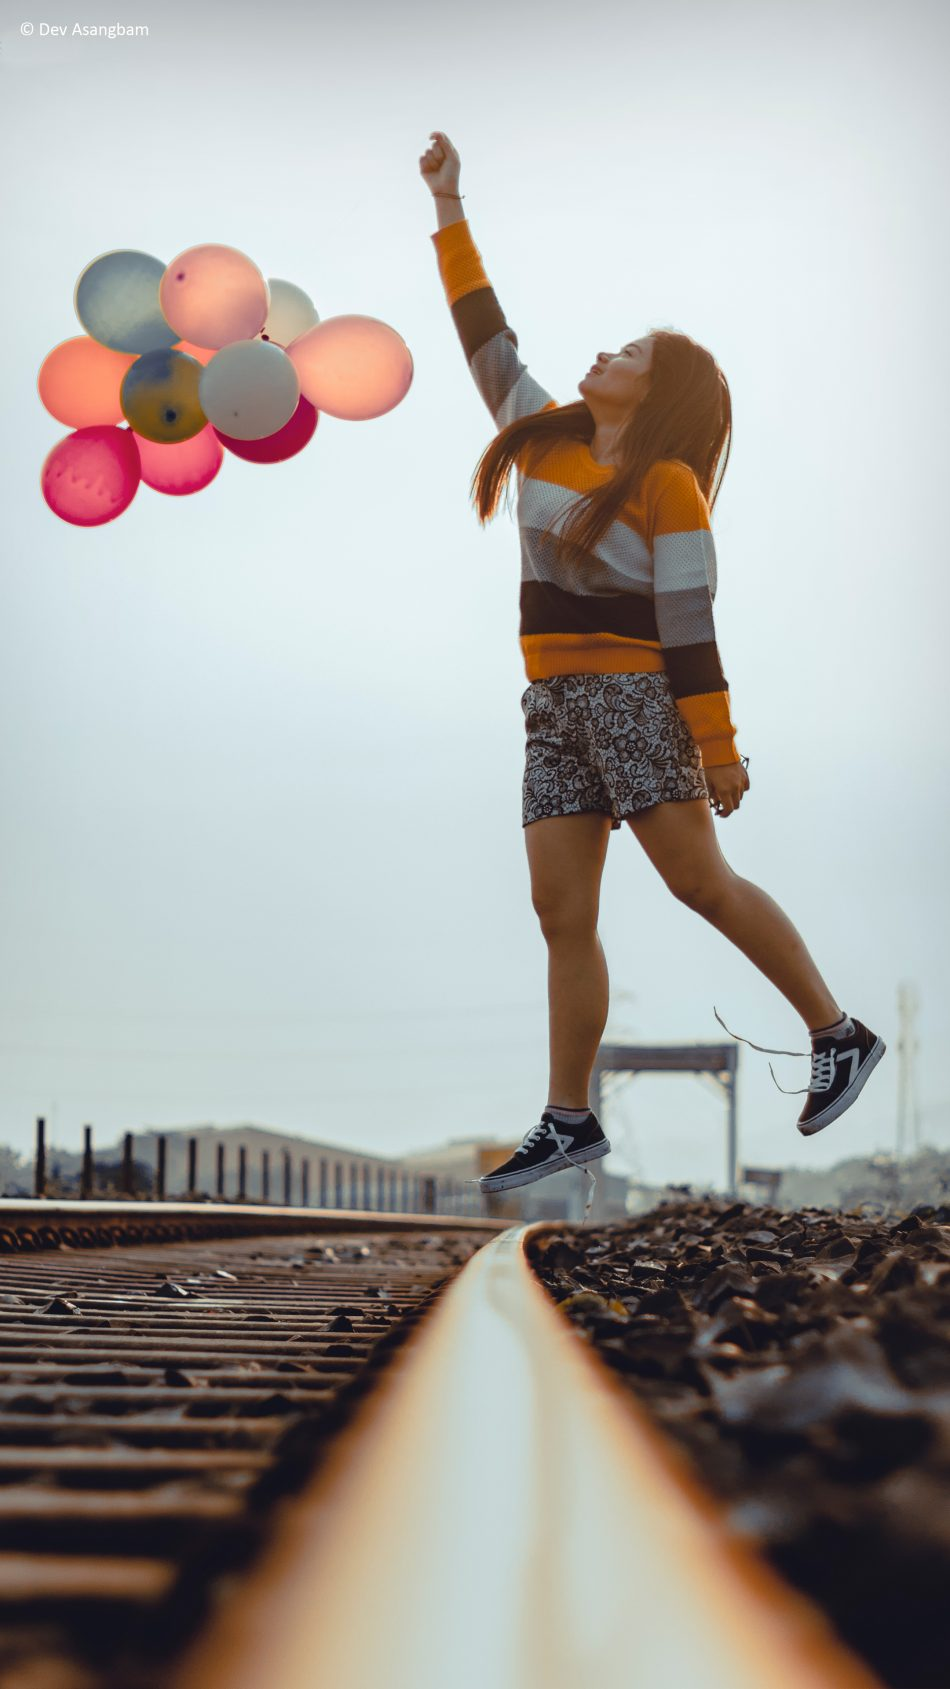 Happy Girl Jumping Balloons Train Track Photography 4K Ultra HD Mobile Wallpaper